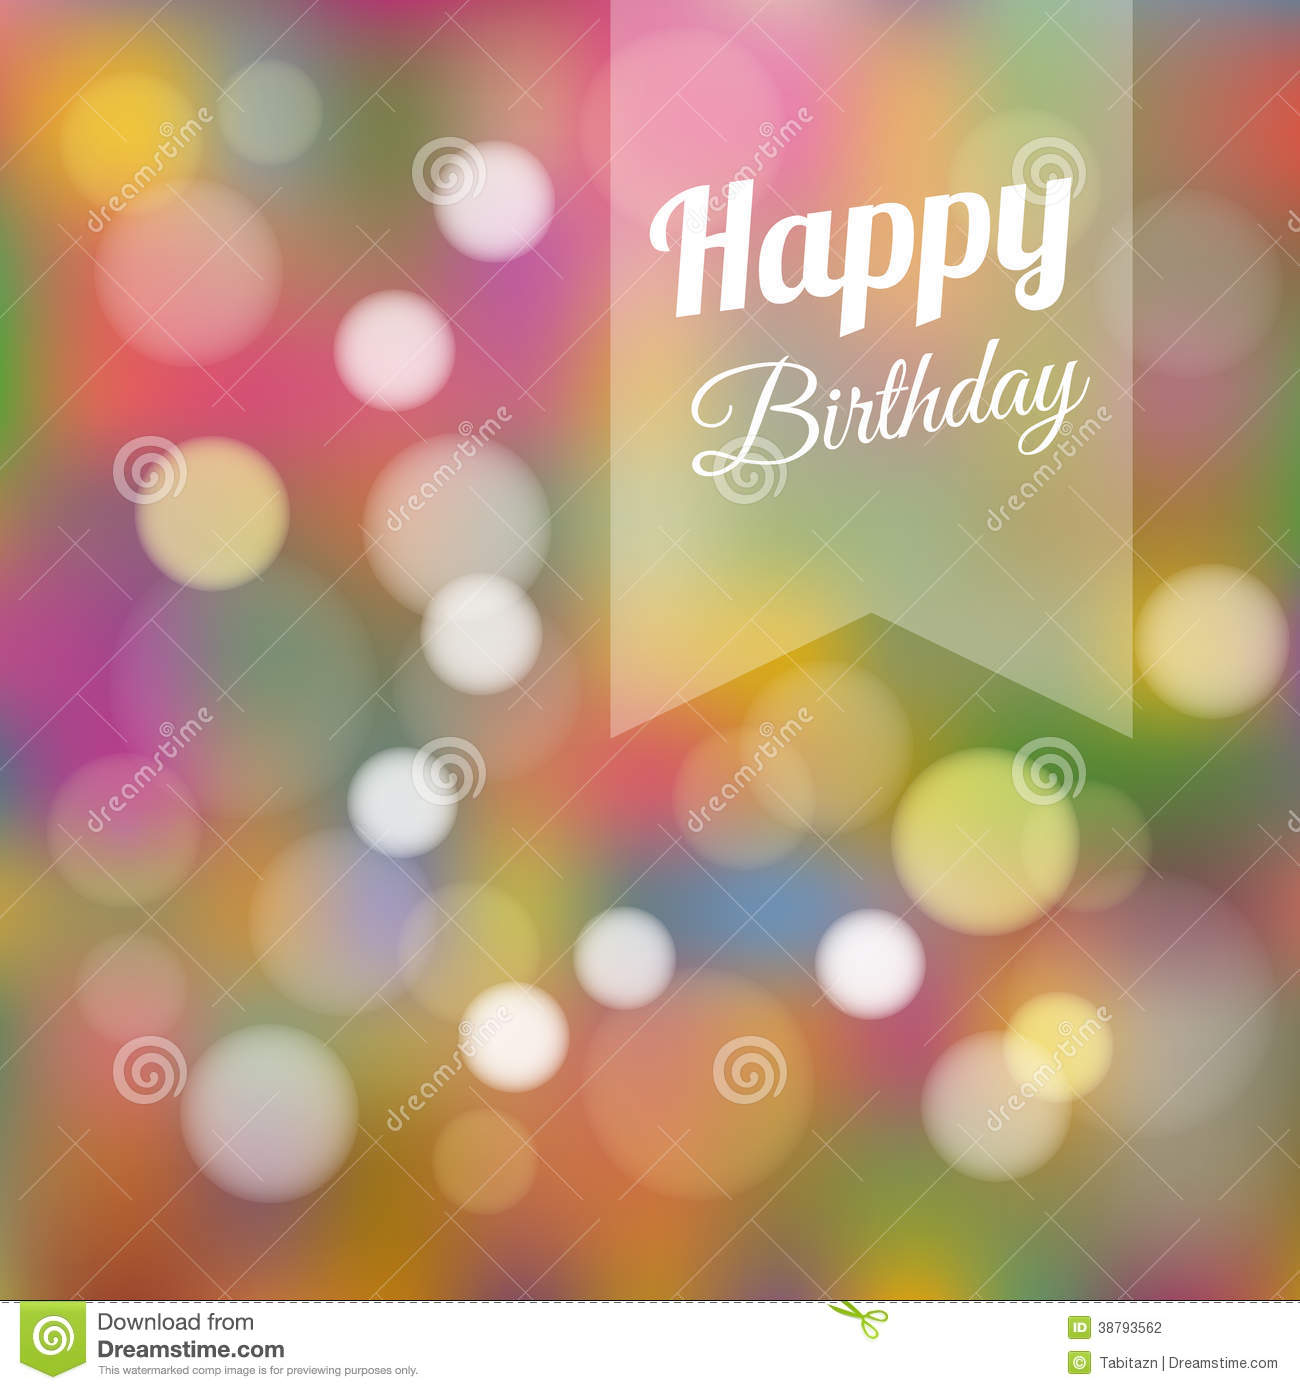 Free Download Birthday Invitation Backgrounds